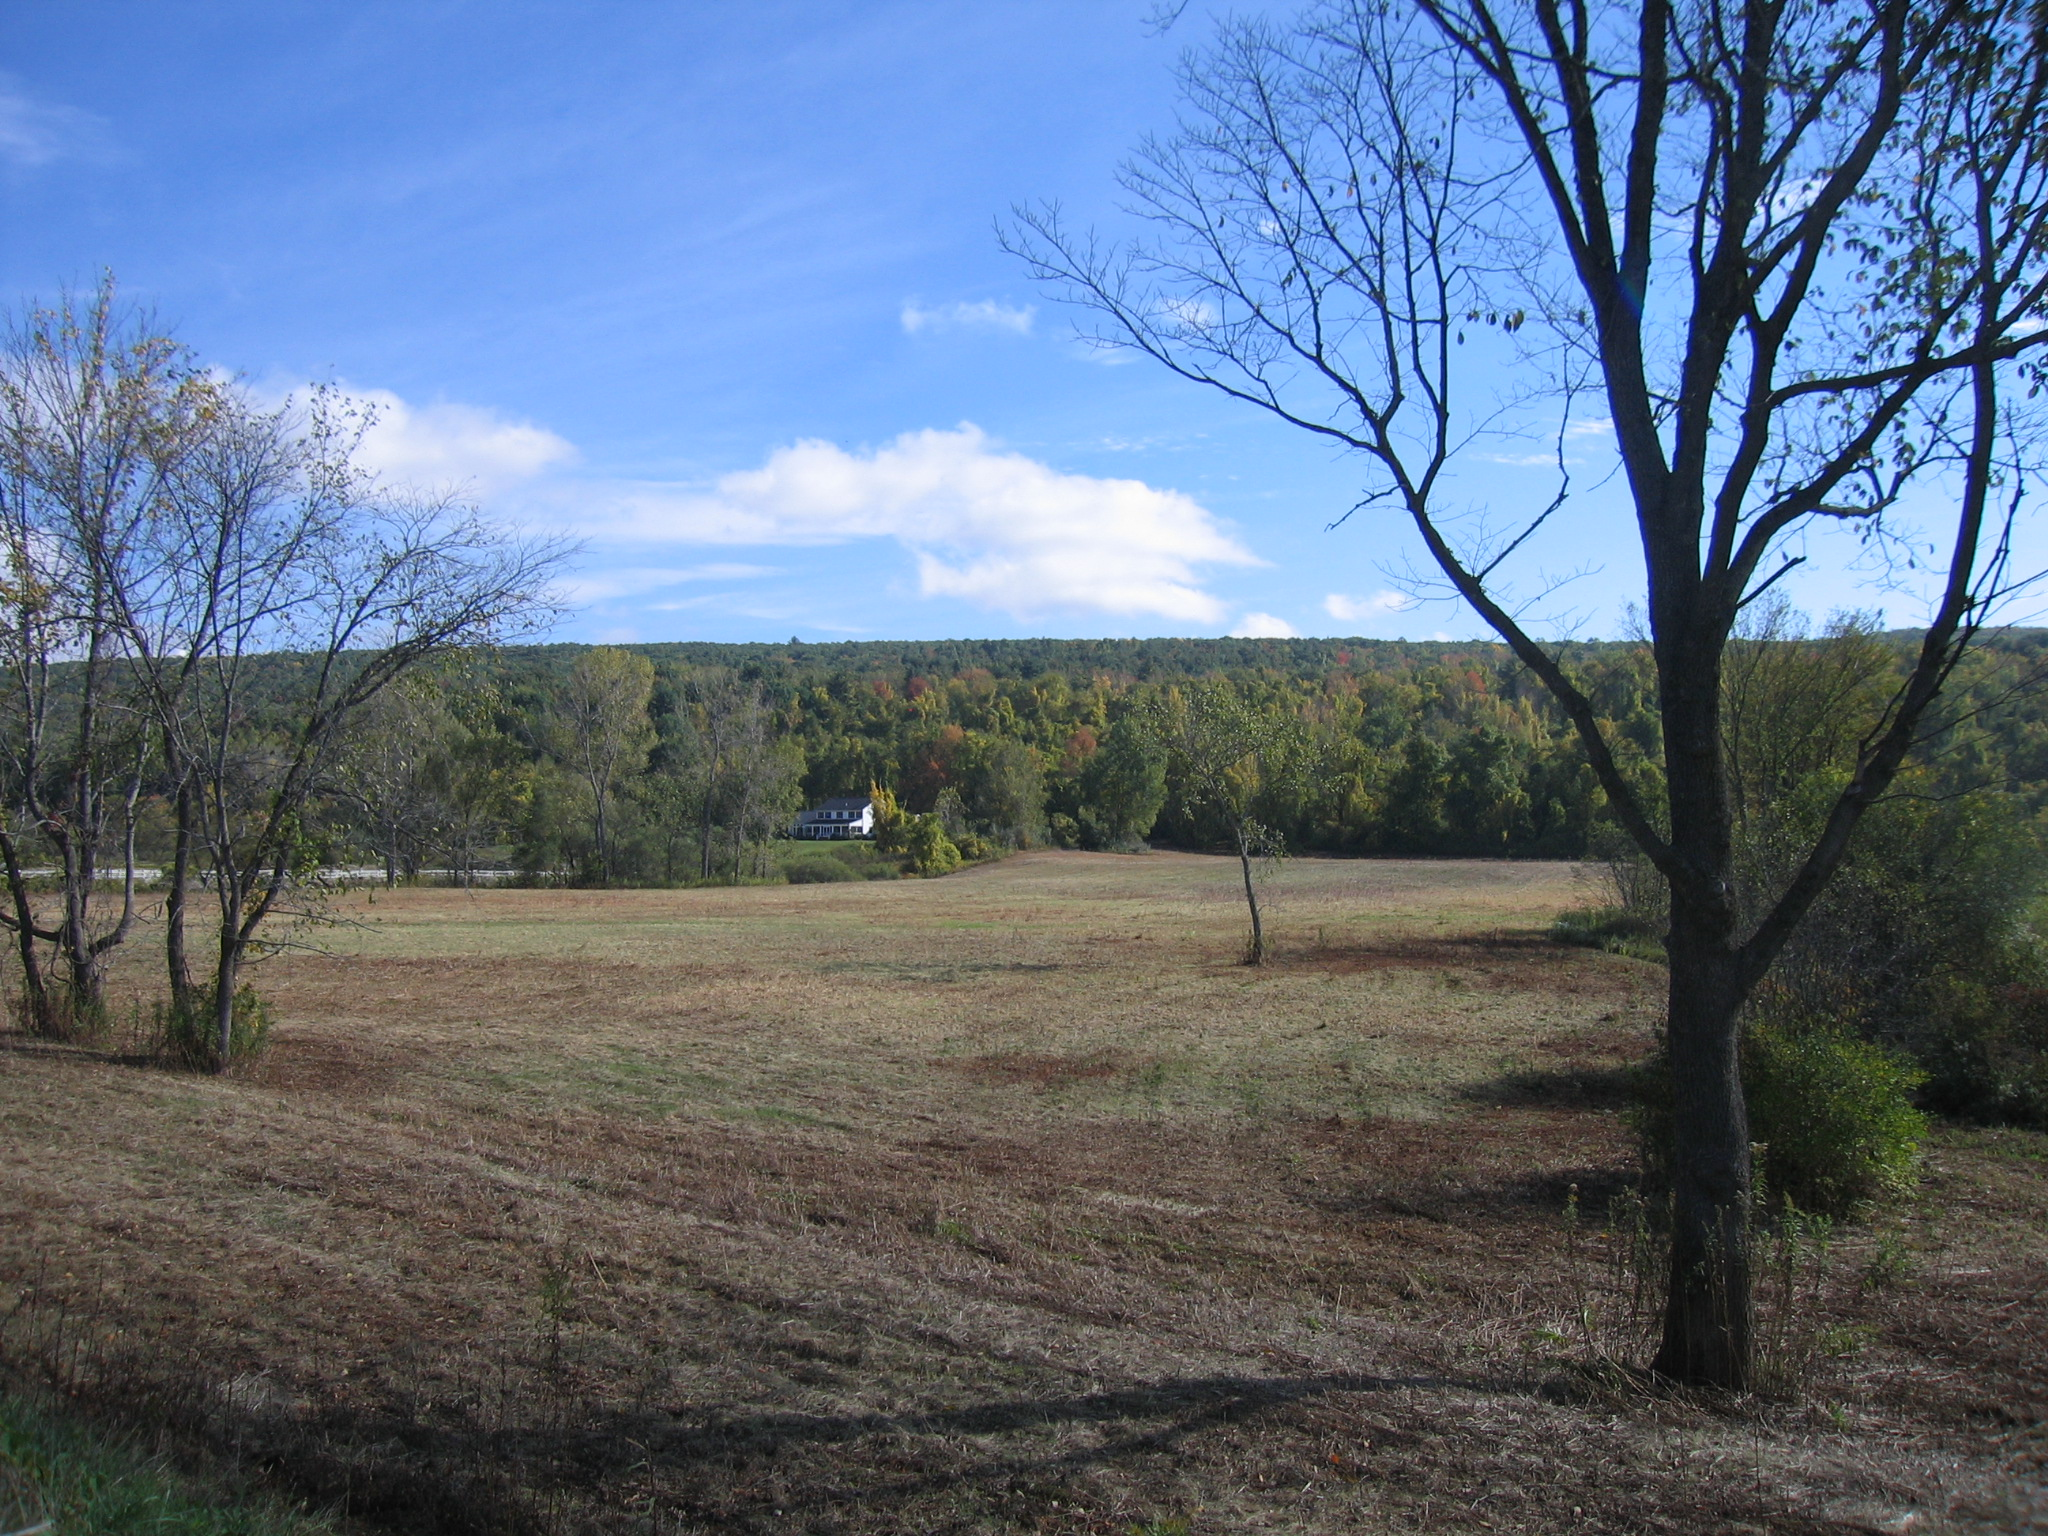 Ladd Property is donated to Great Barrington Land Conservancy